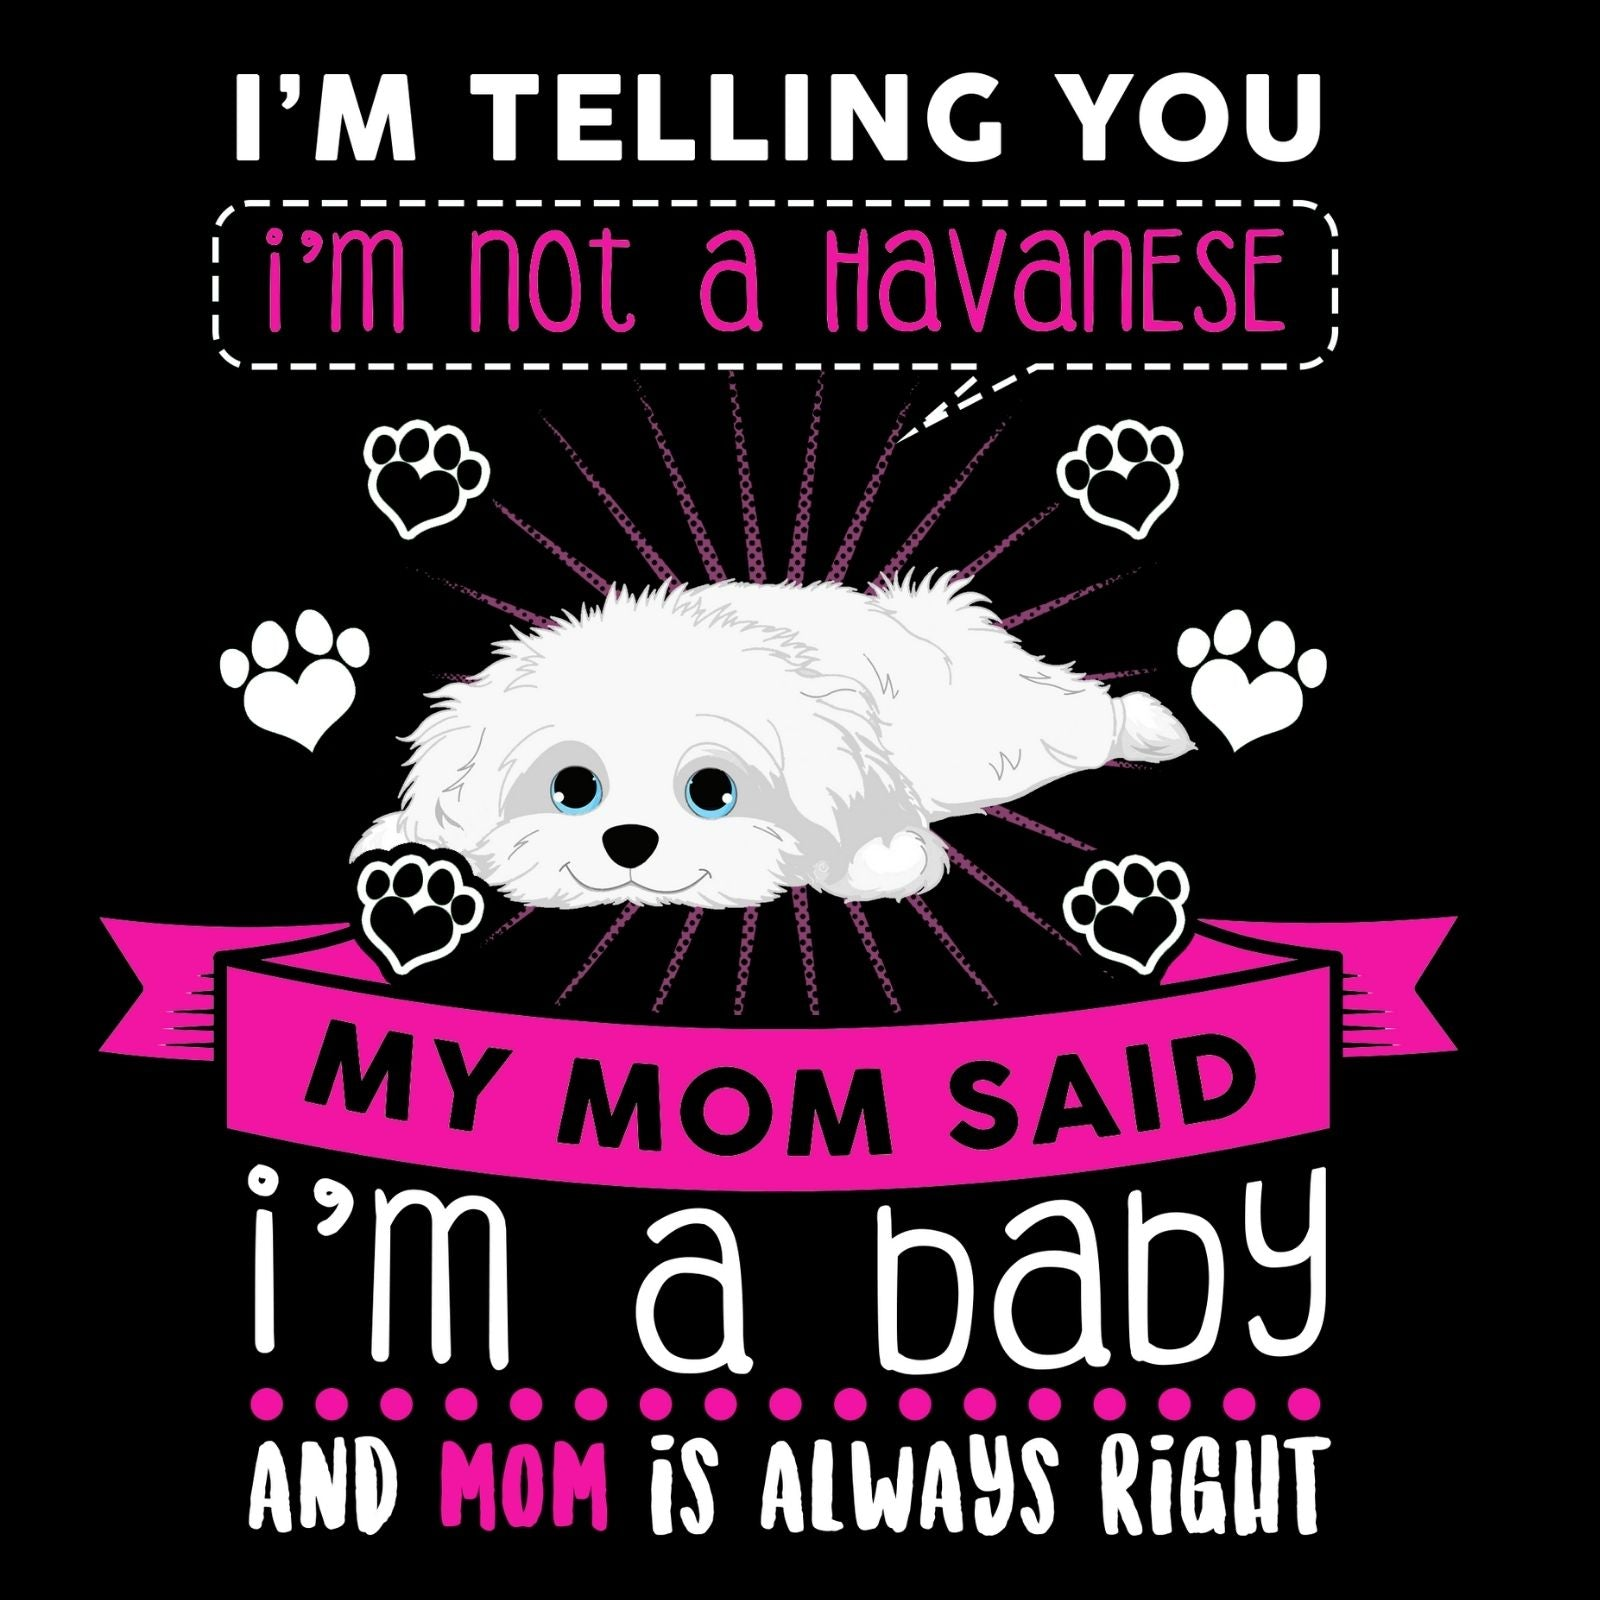 I'm Telling You I'm Not A Havanese My Mom Said I'm A Baby And My Mom Is Always Right - Bastard Graphics